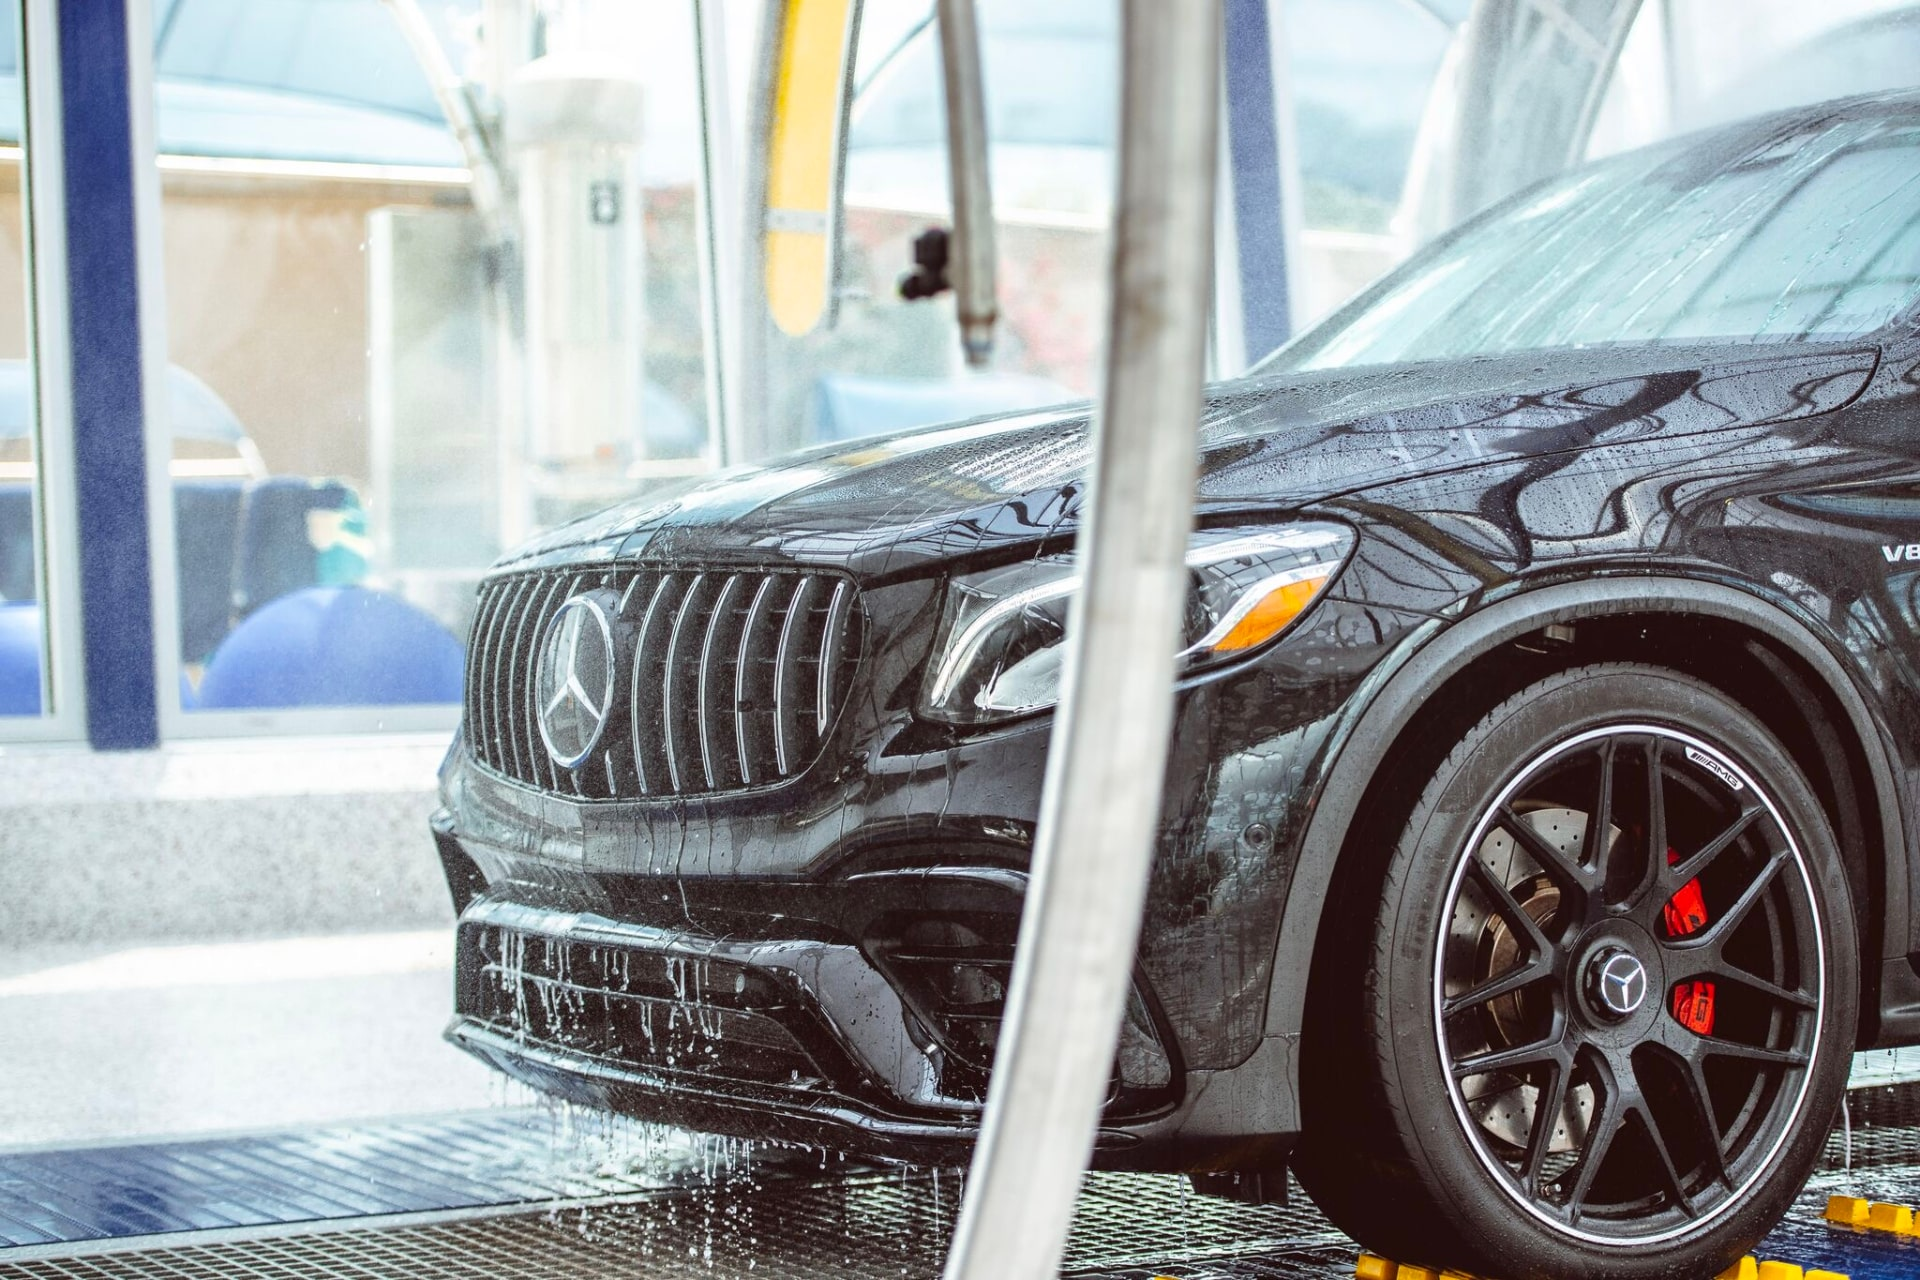 Knoxville Car Wash and Detailing